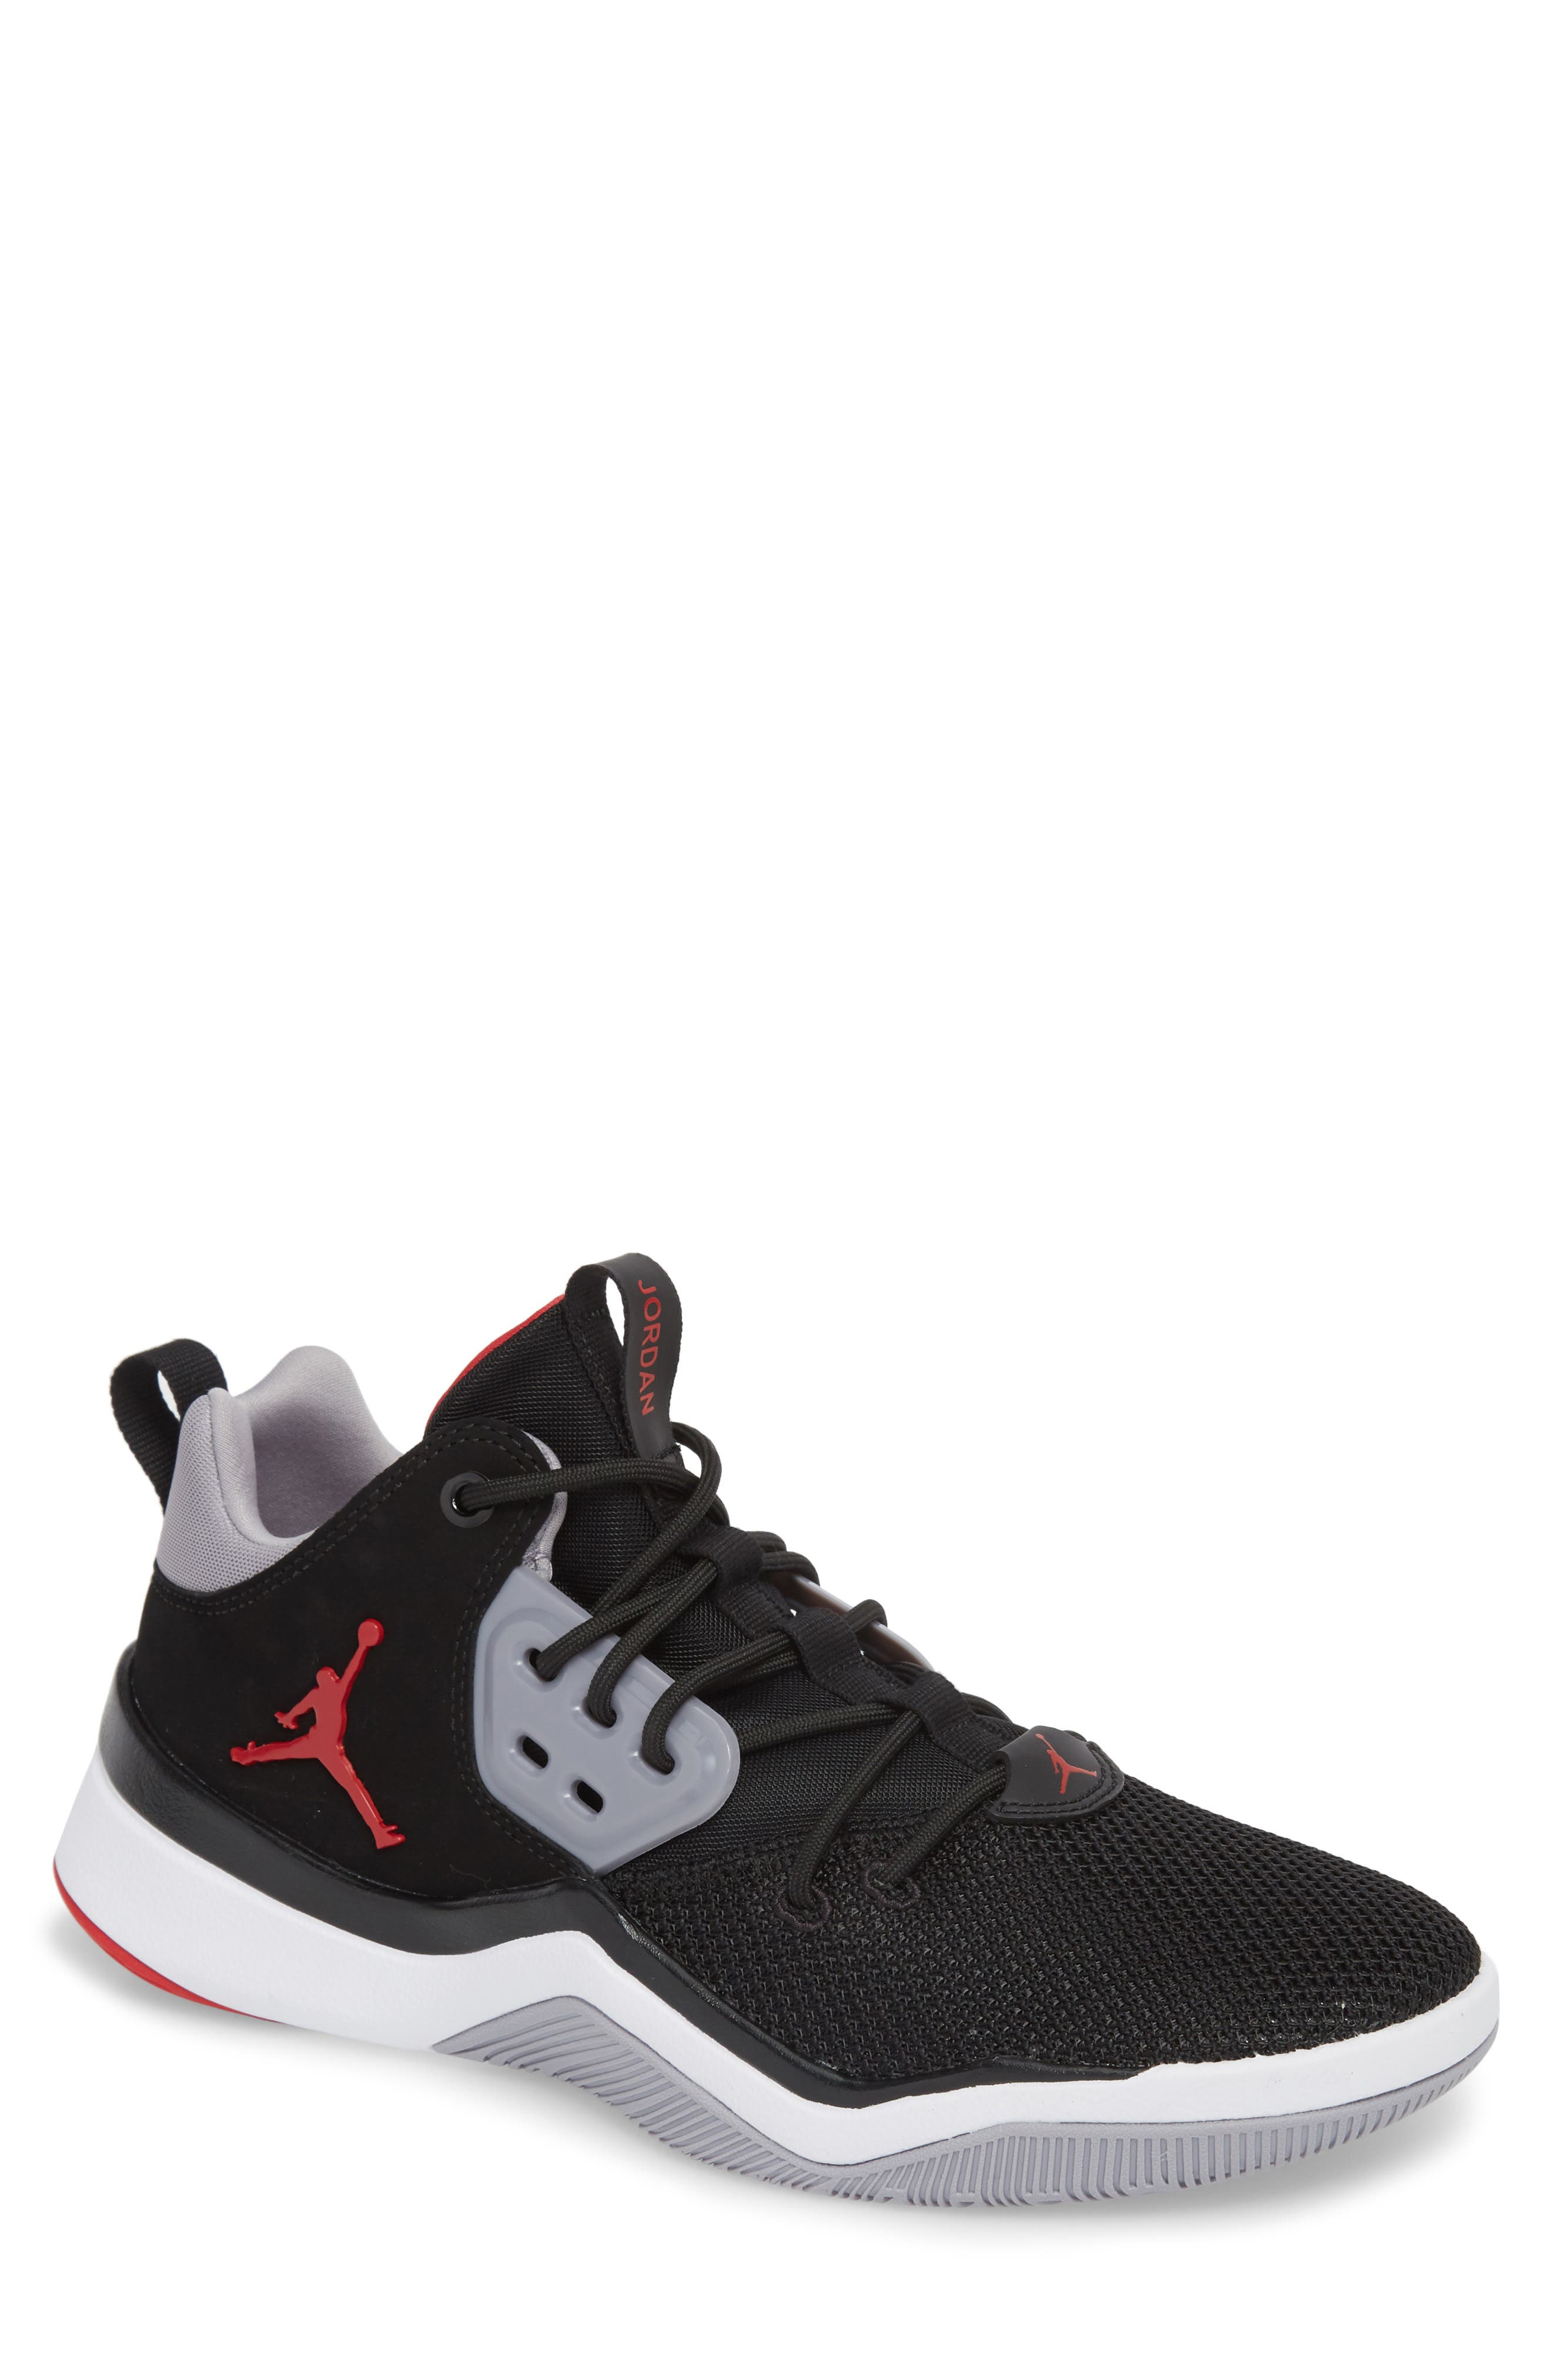 Jordan DNA Sneaker,                             Main thumbnail 1, color,                             001